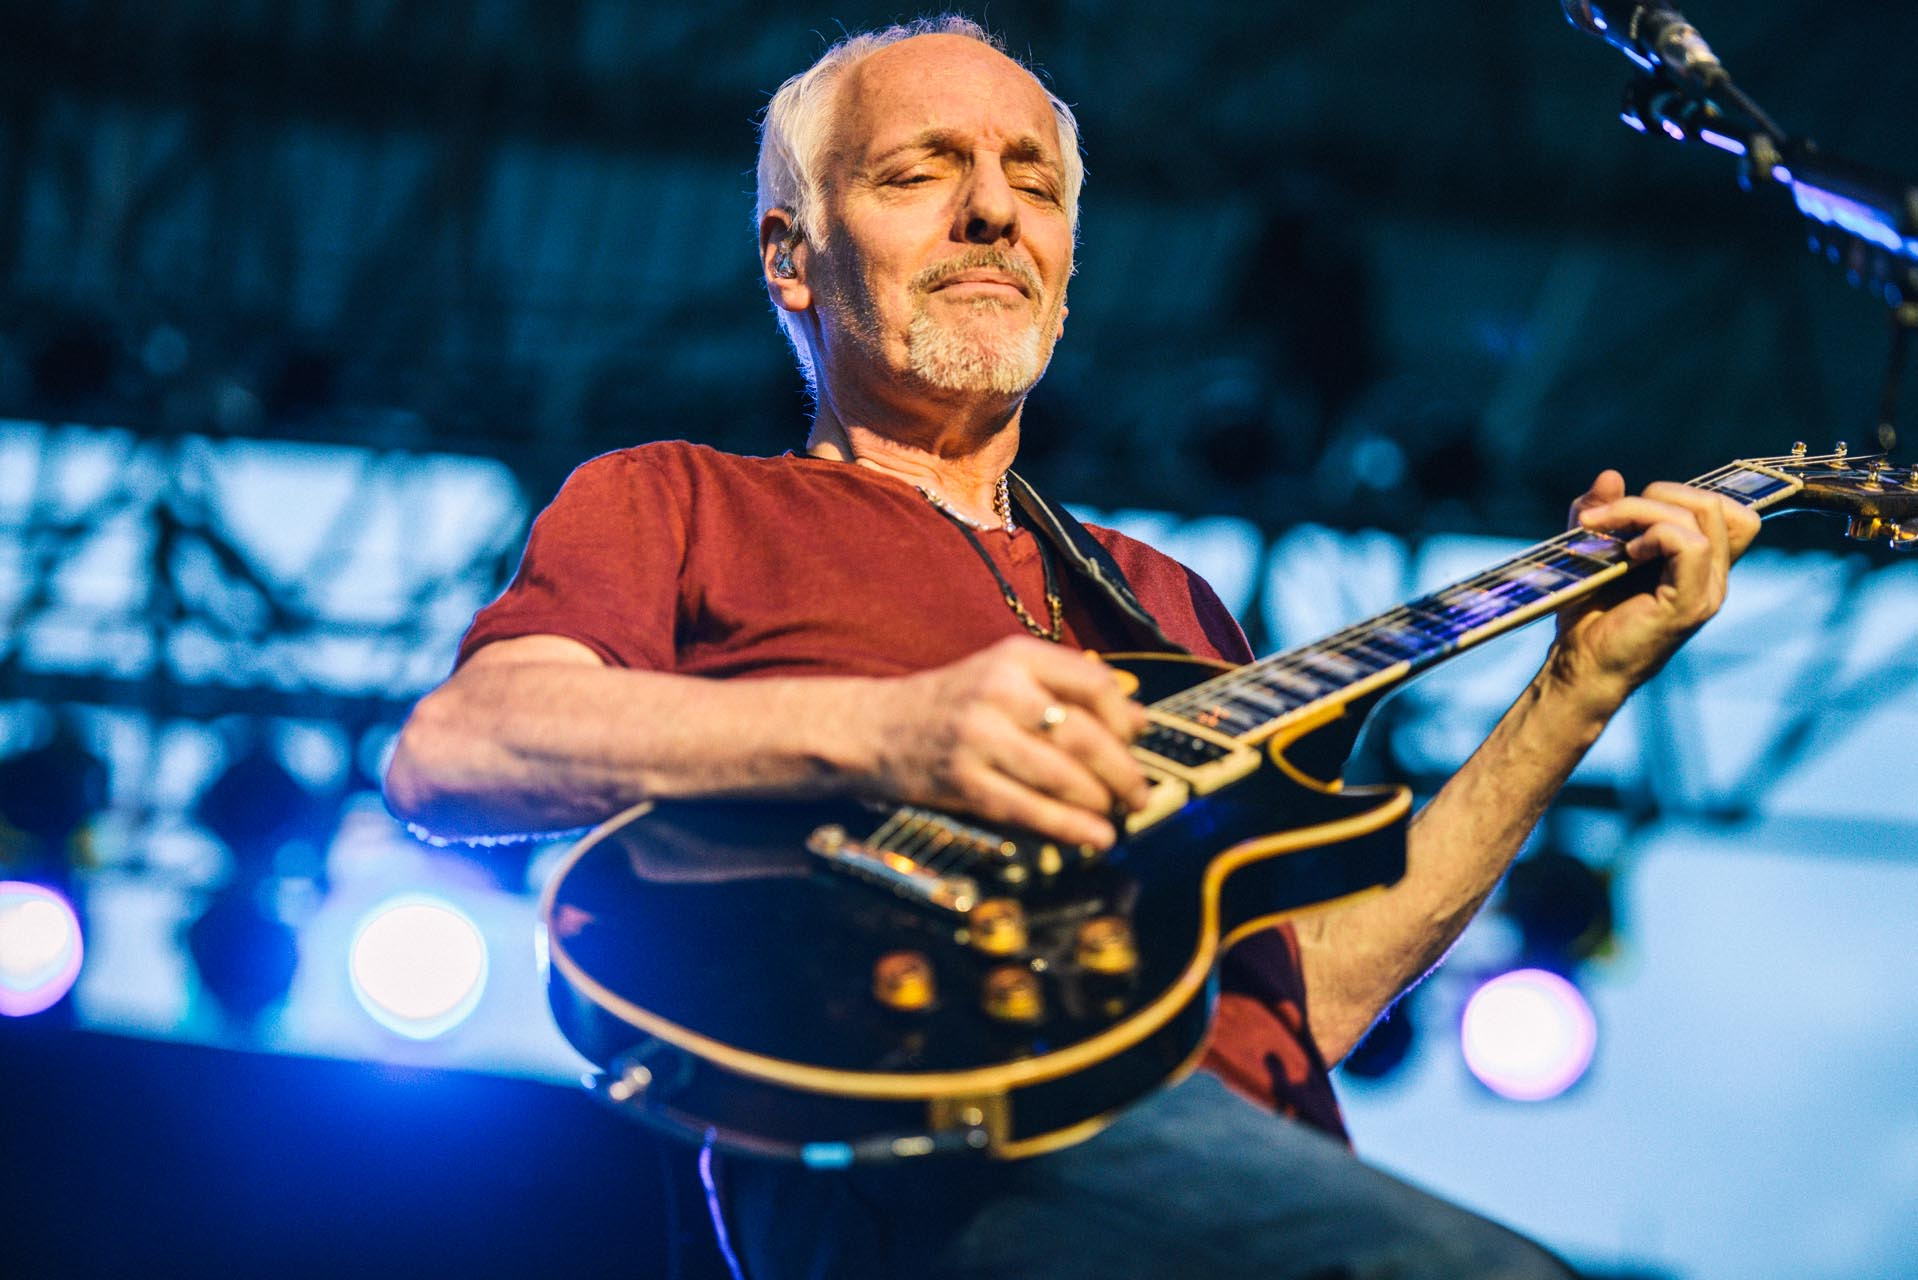 Peter Frampton Live Indianapolis The Lawn White River State Park 2013 15